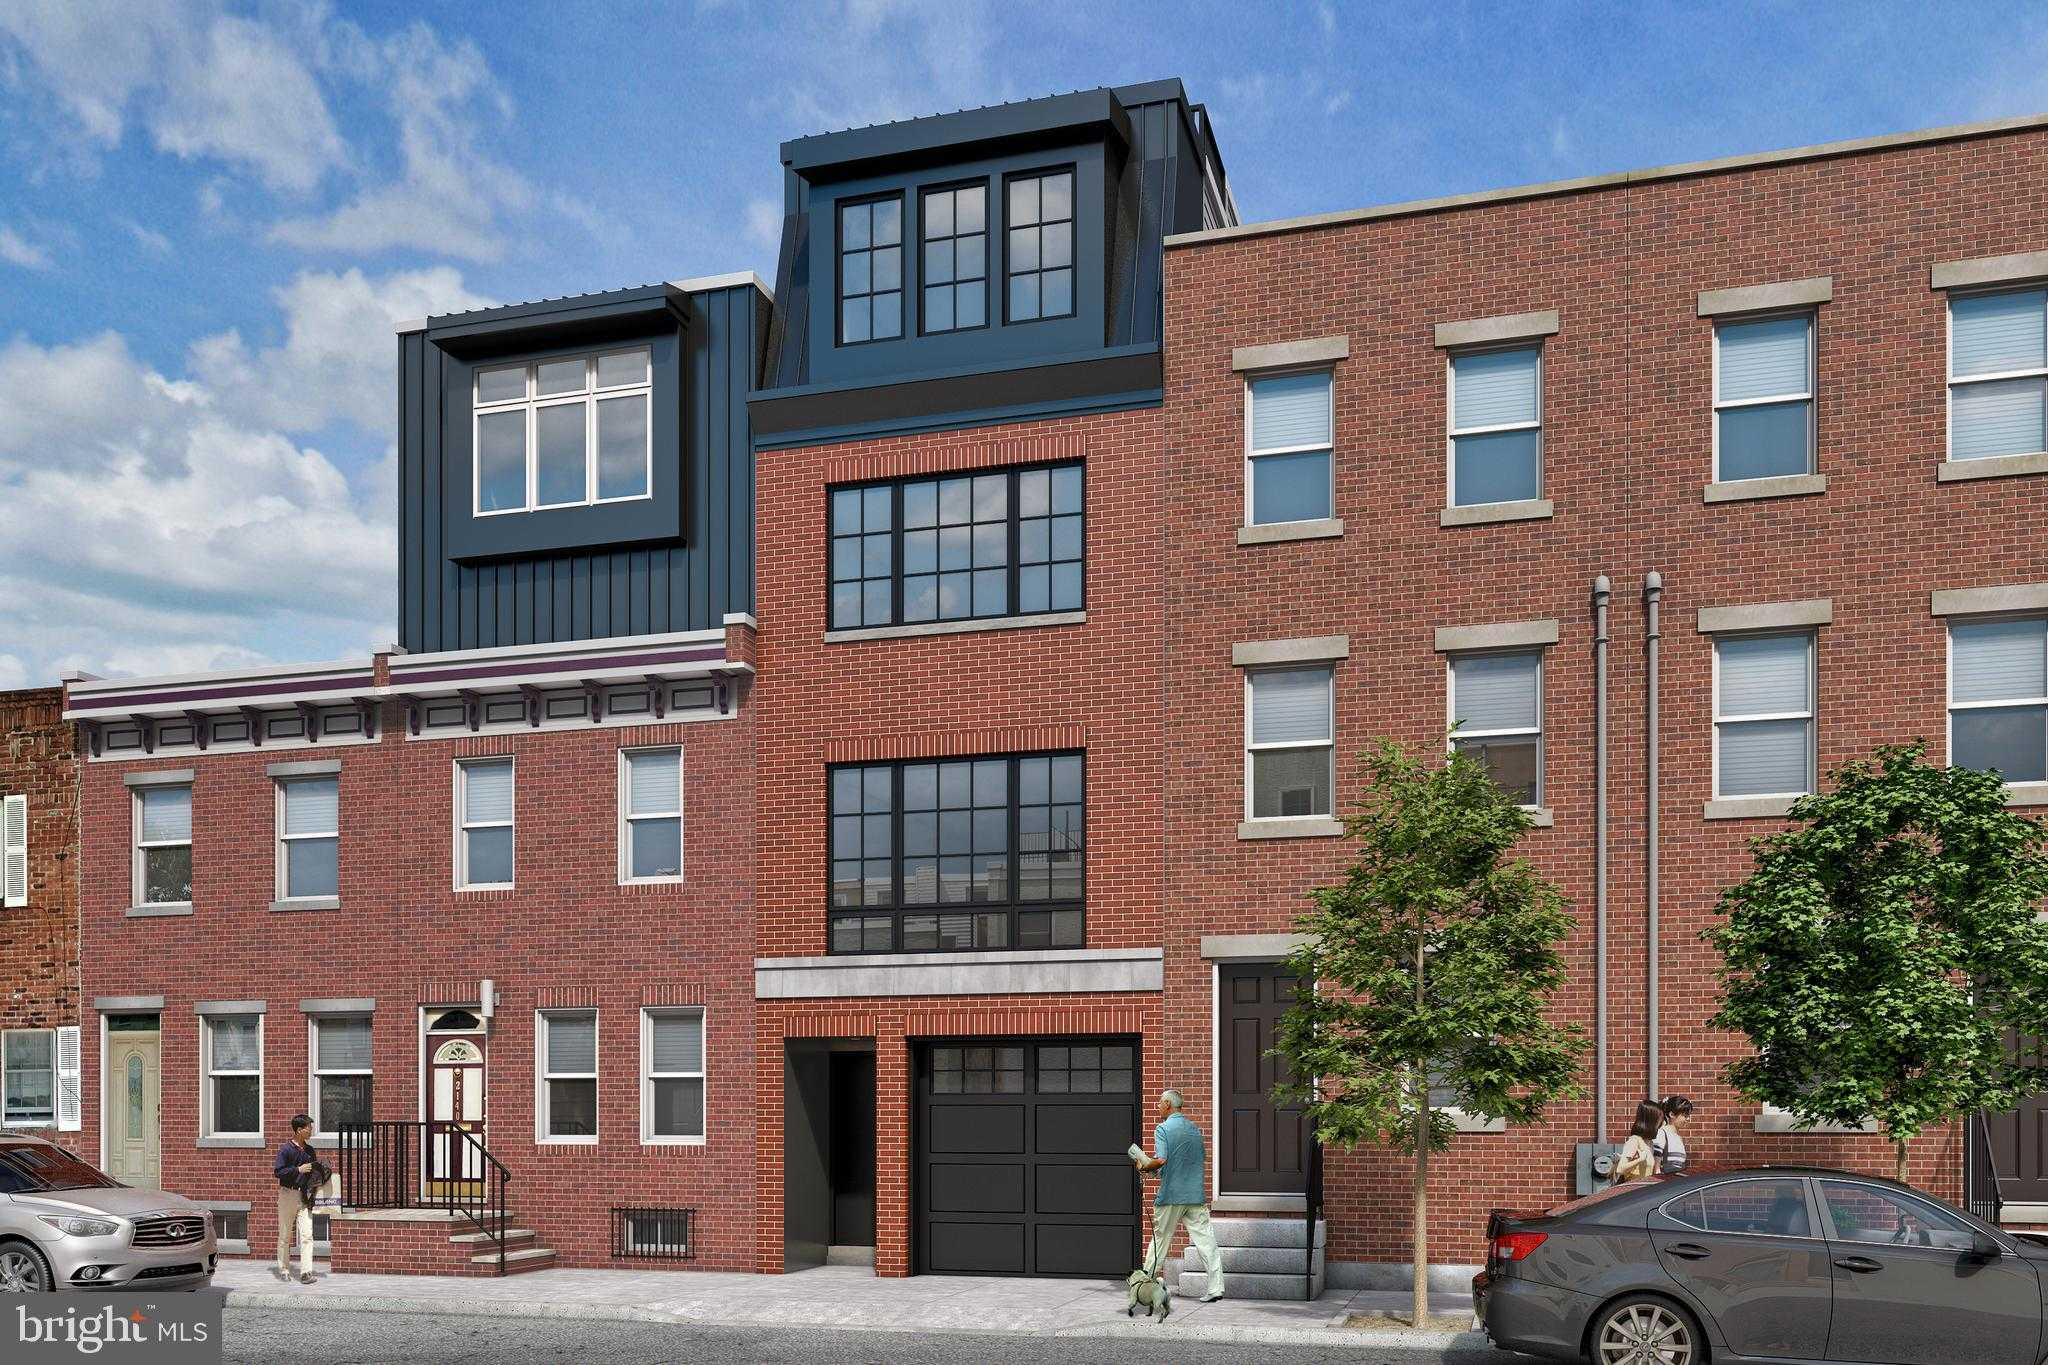 $875,000 - 3Br/3Ba -  for Sale in Graduate Hospital, Philadelphia